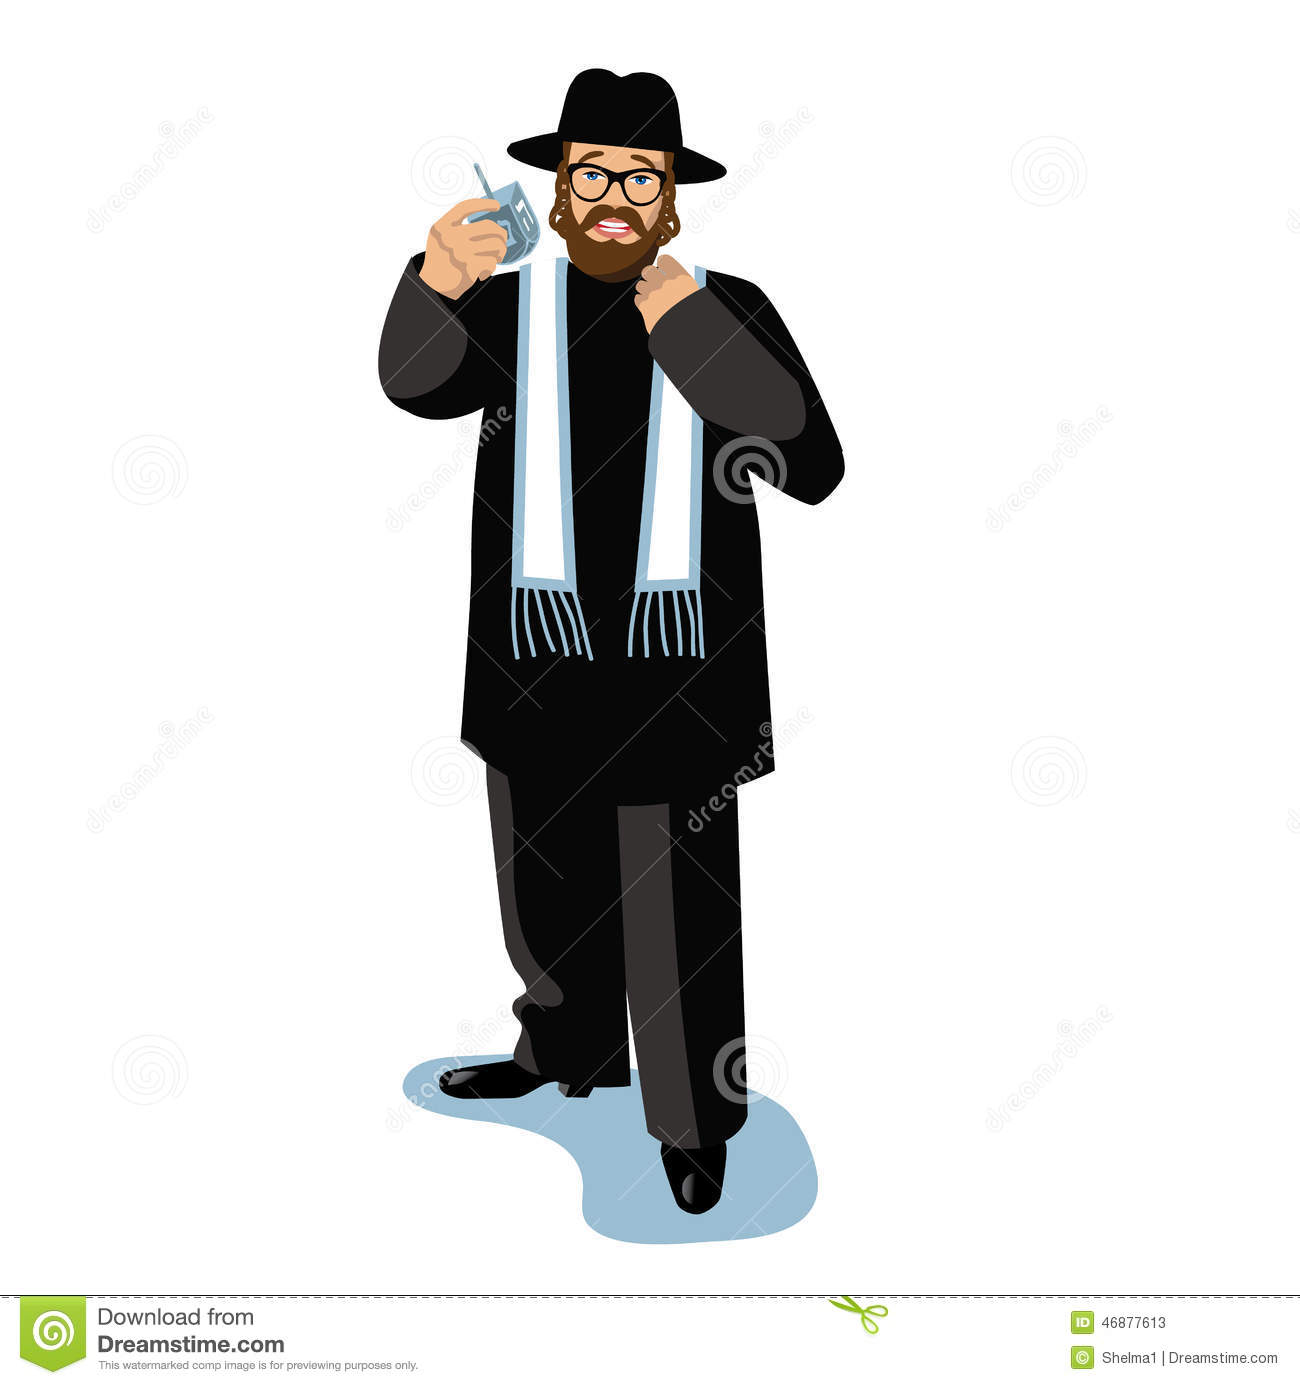 Rabbis Man Hugging Colourful Clipart.